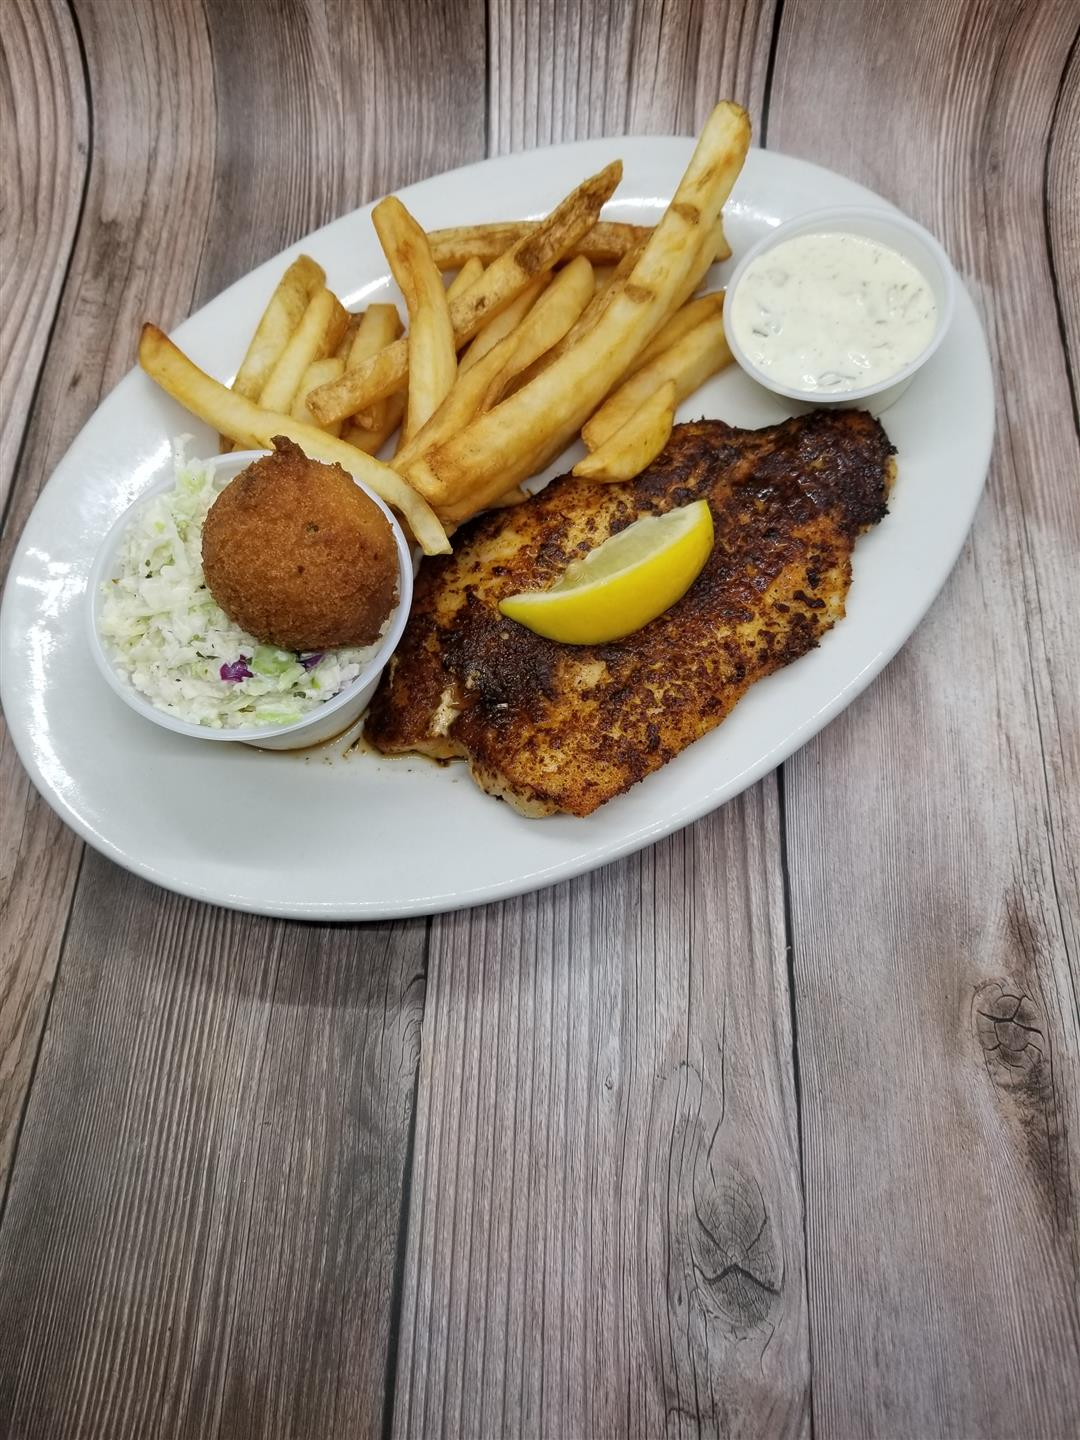 Lunch Blackened Grooper Entree with Regular Fries